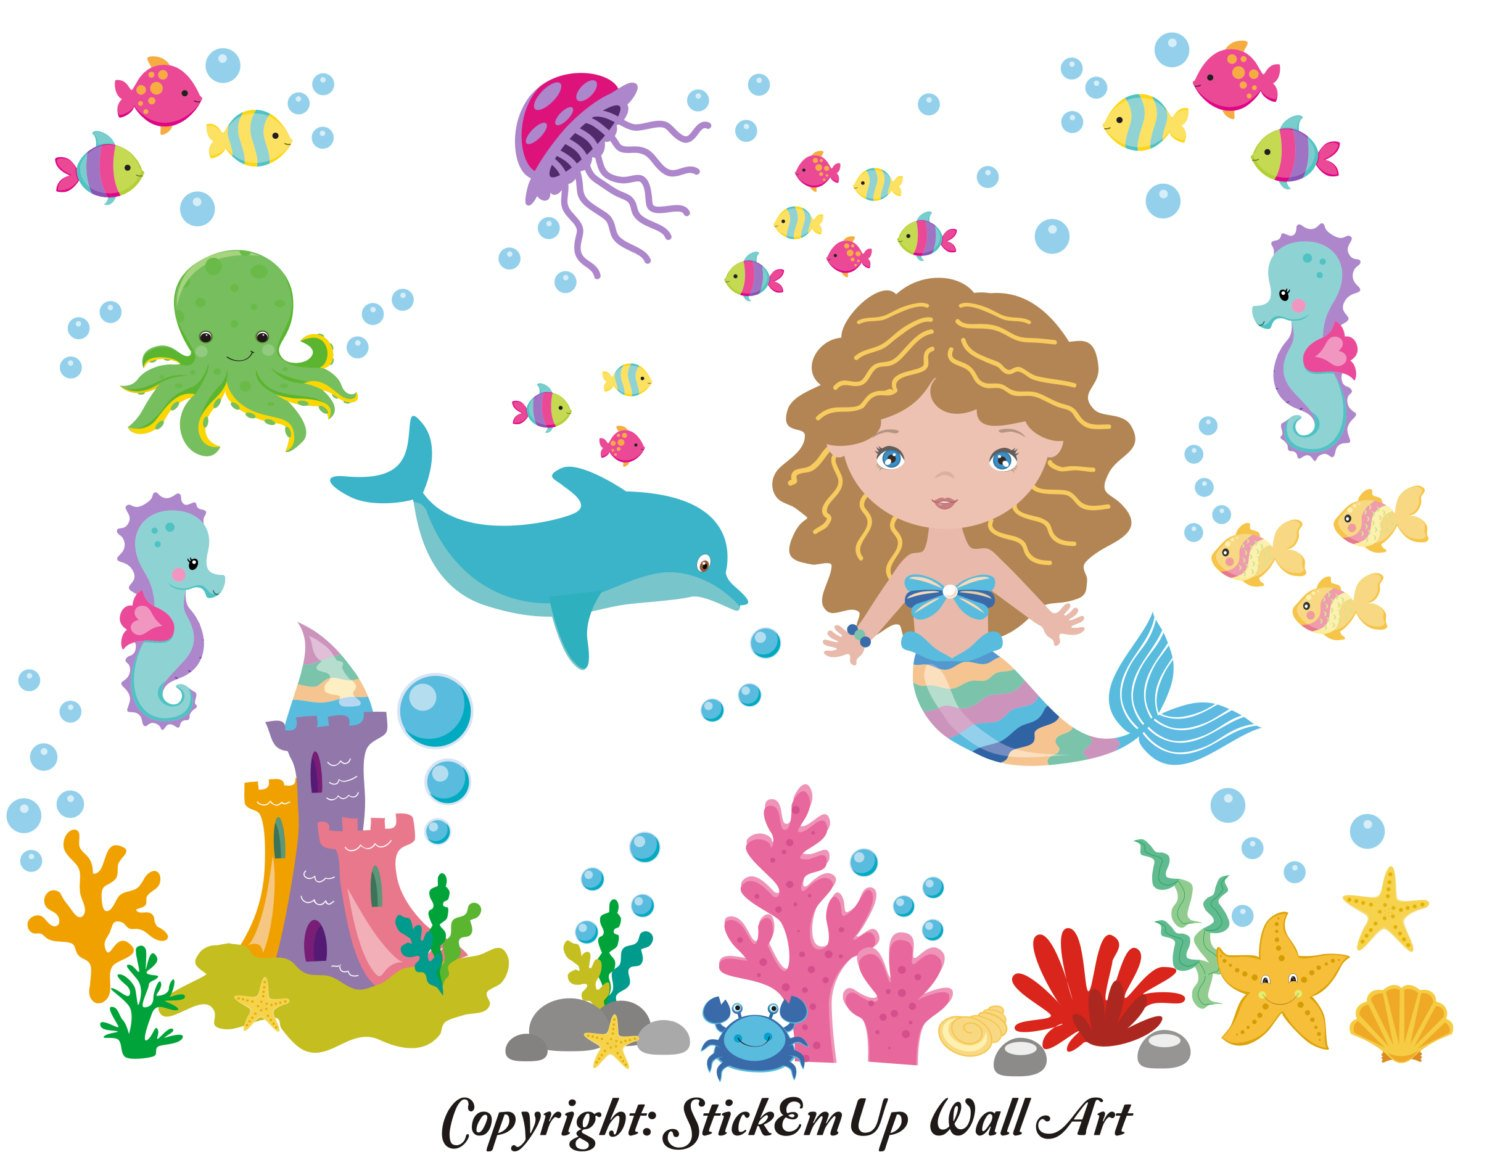 Baby Nursery Kids Children's Wall Decals: Sea Ocean Mermaids Marine Life Animals Wildlife Themed 50'' tall X 65'' wide (Inches): Repositionable Removable Reusable Wall Art: Better than vinyl wall decals: Superior Material